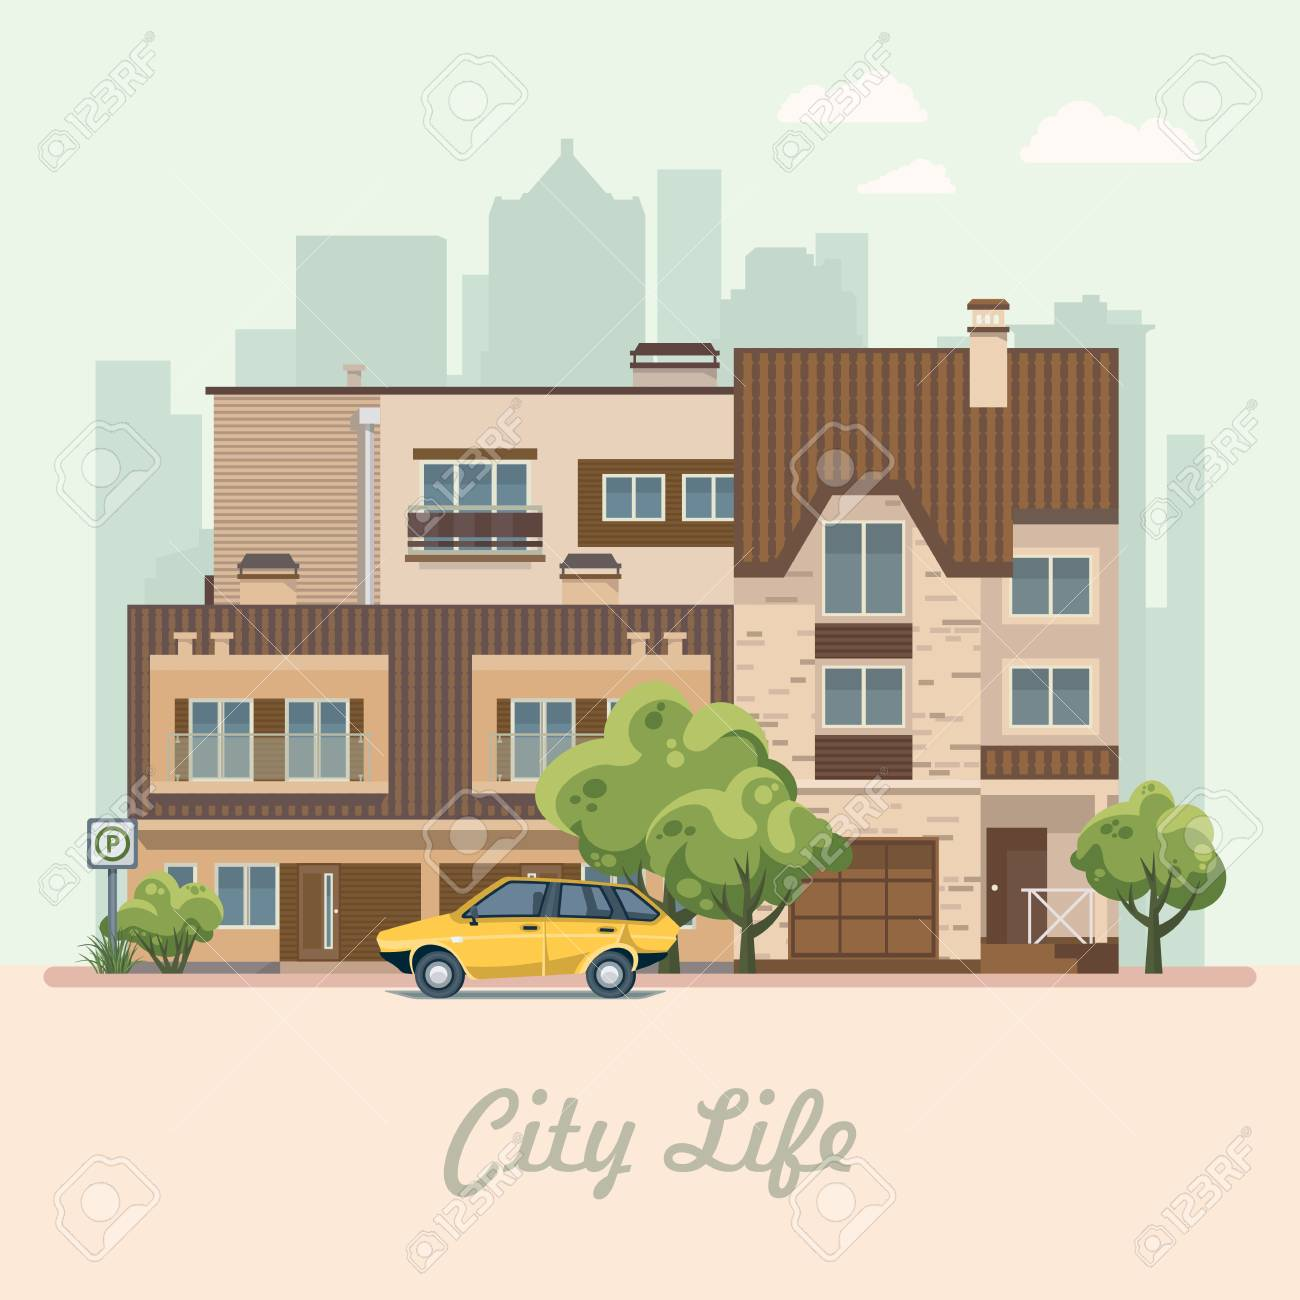 City life  Vector illustration with buildings, detached house,